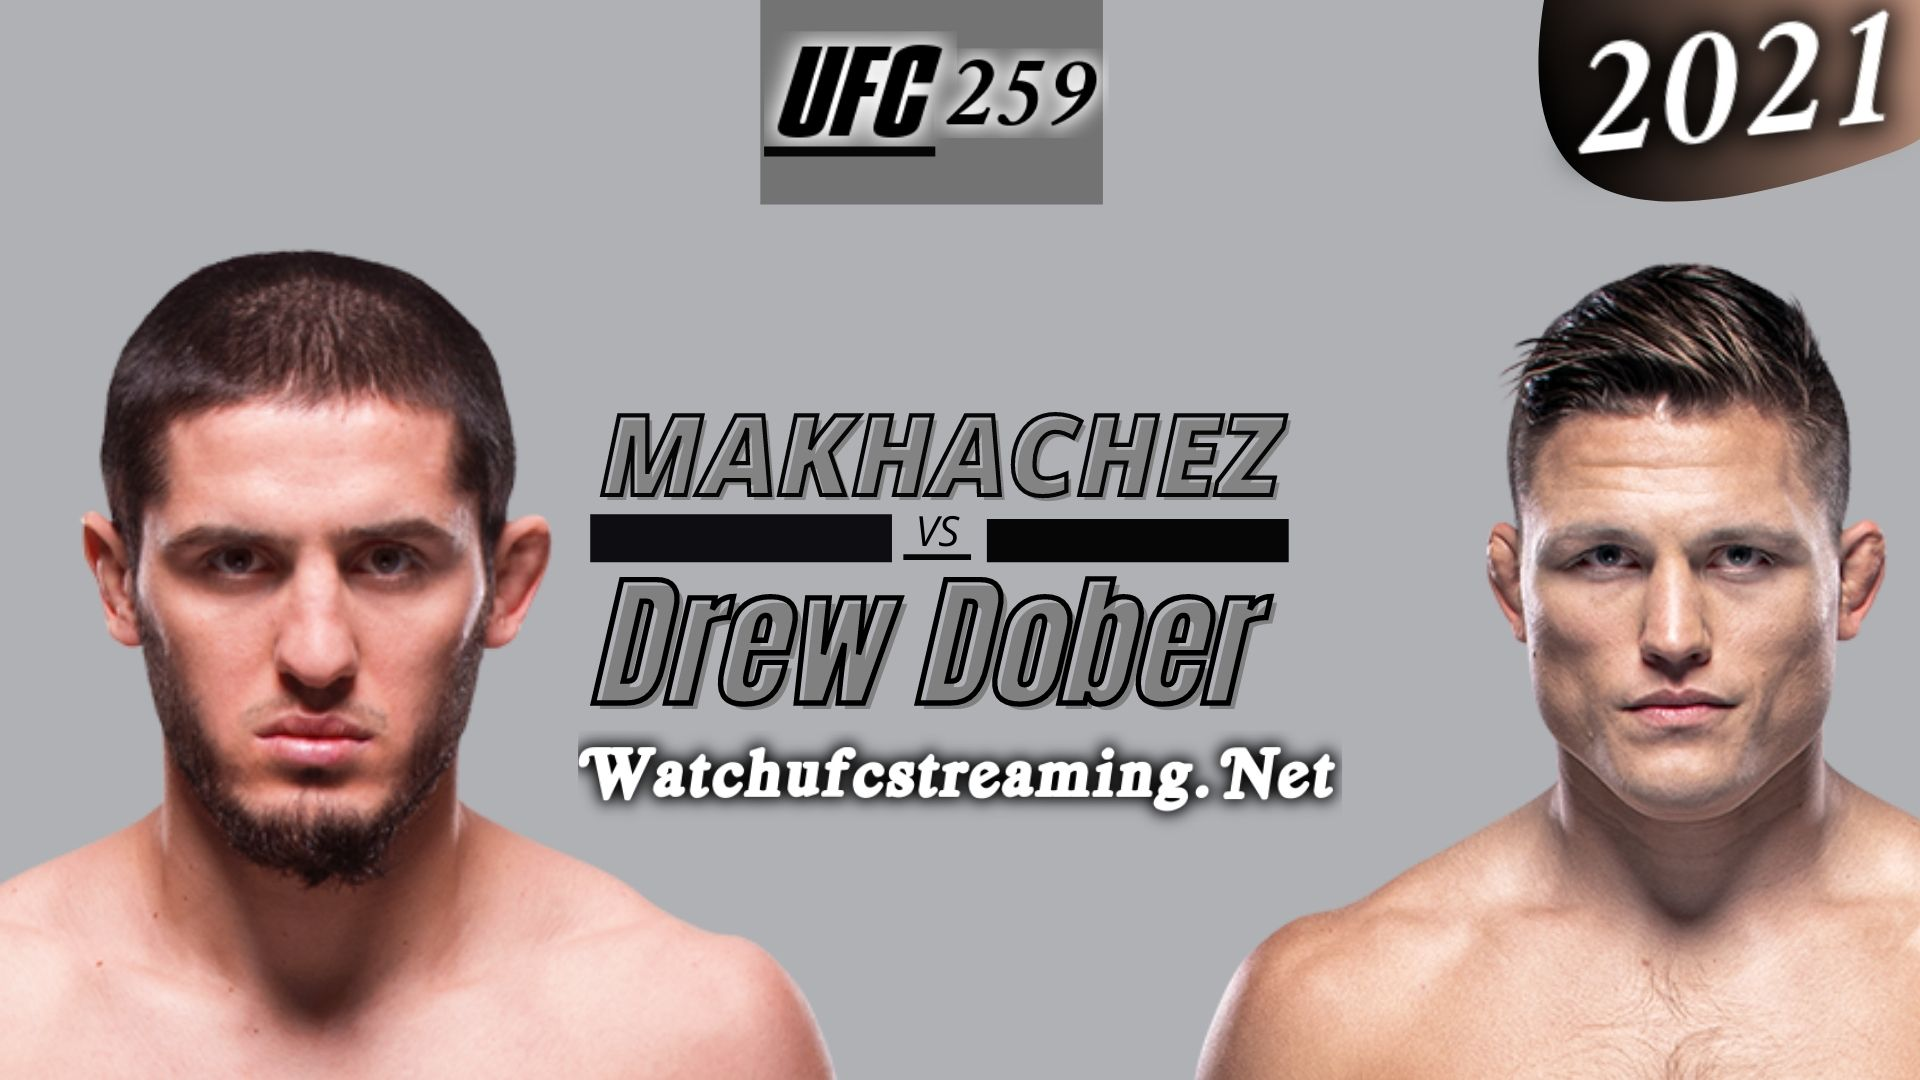 UFC 259: Islam Makhachev Vs Drew Dober Highlights 2021 | Lightweight